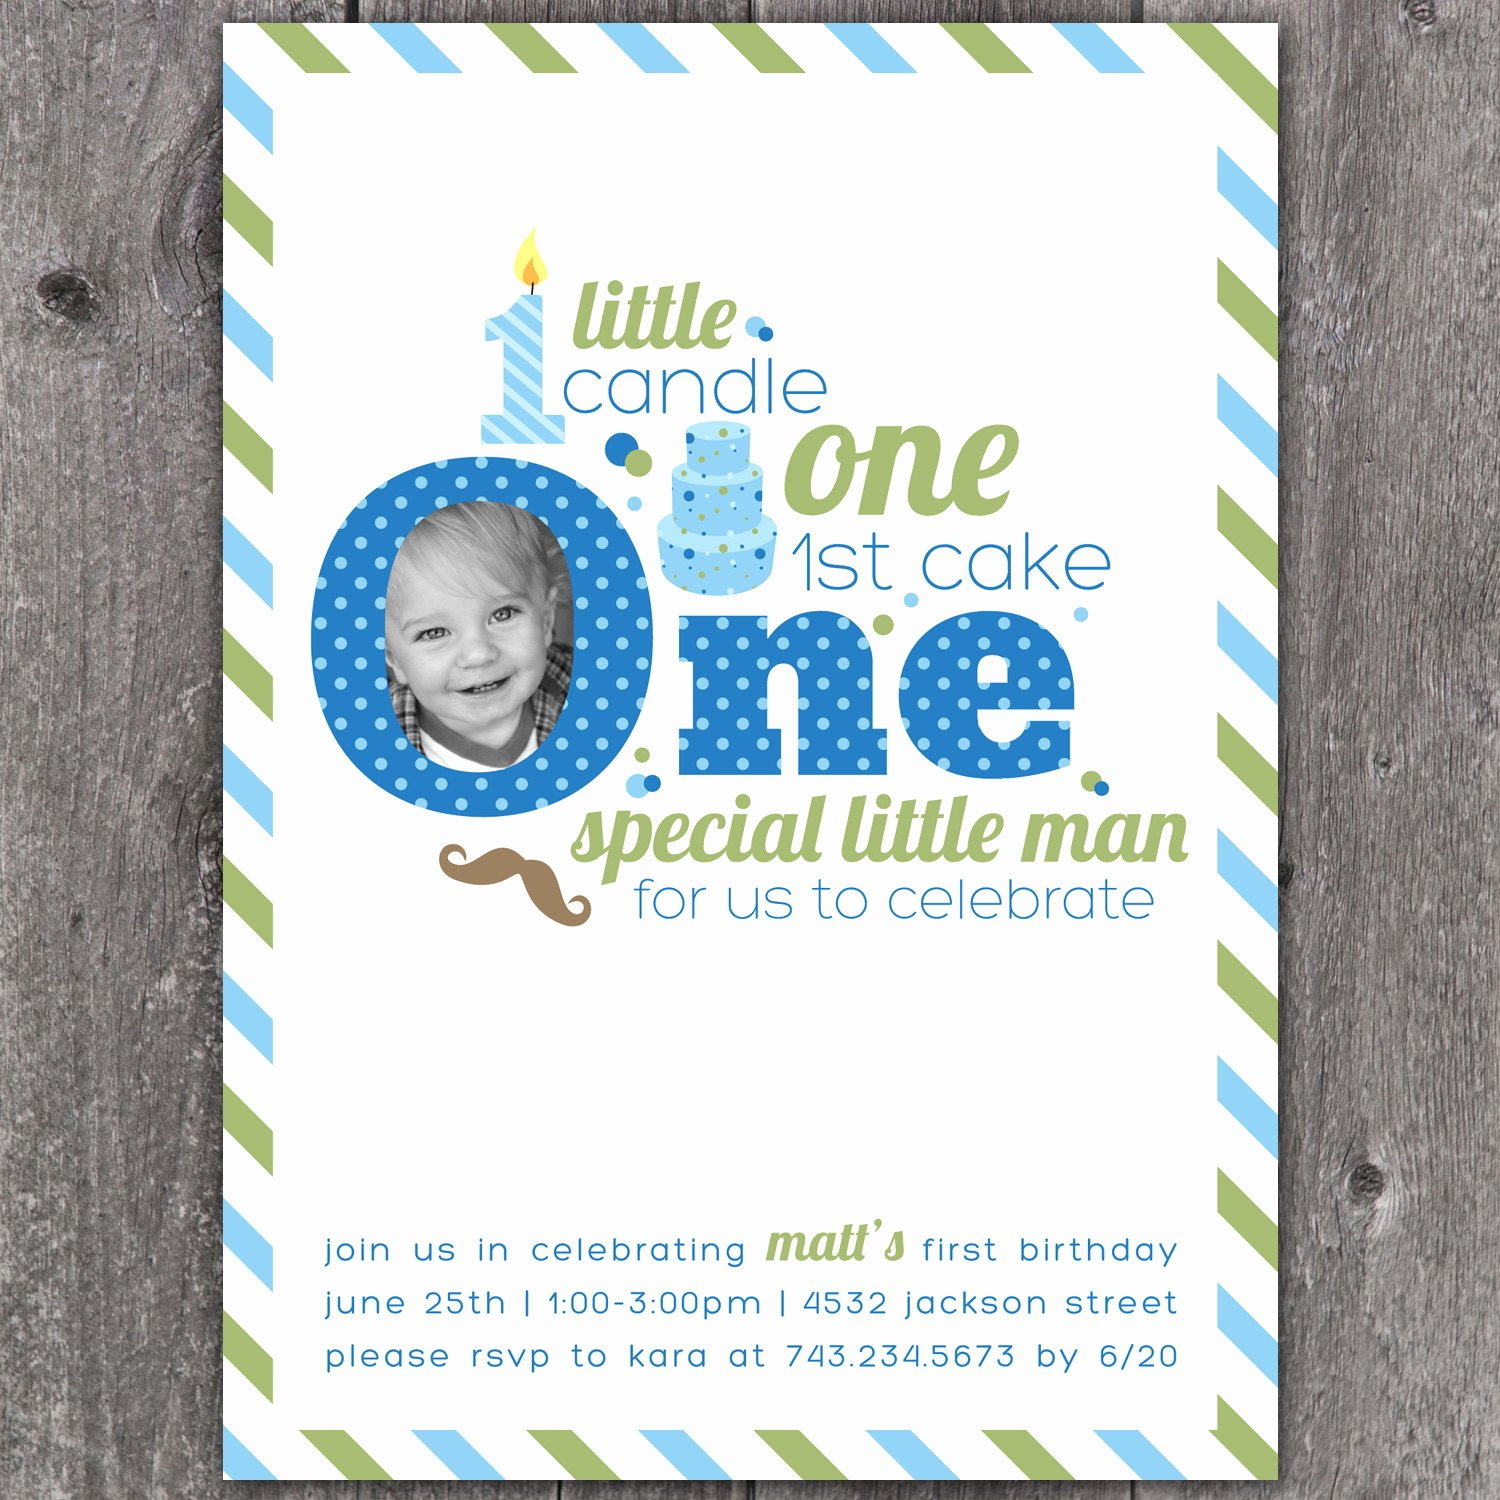 1st Birthday Invitation Template Lovely E Little Man Custom Digital First Birthday